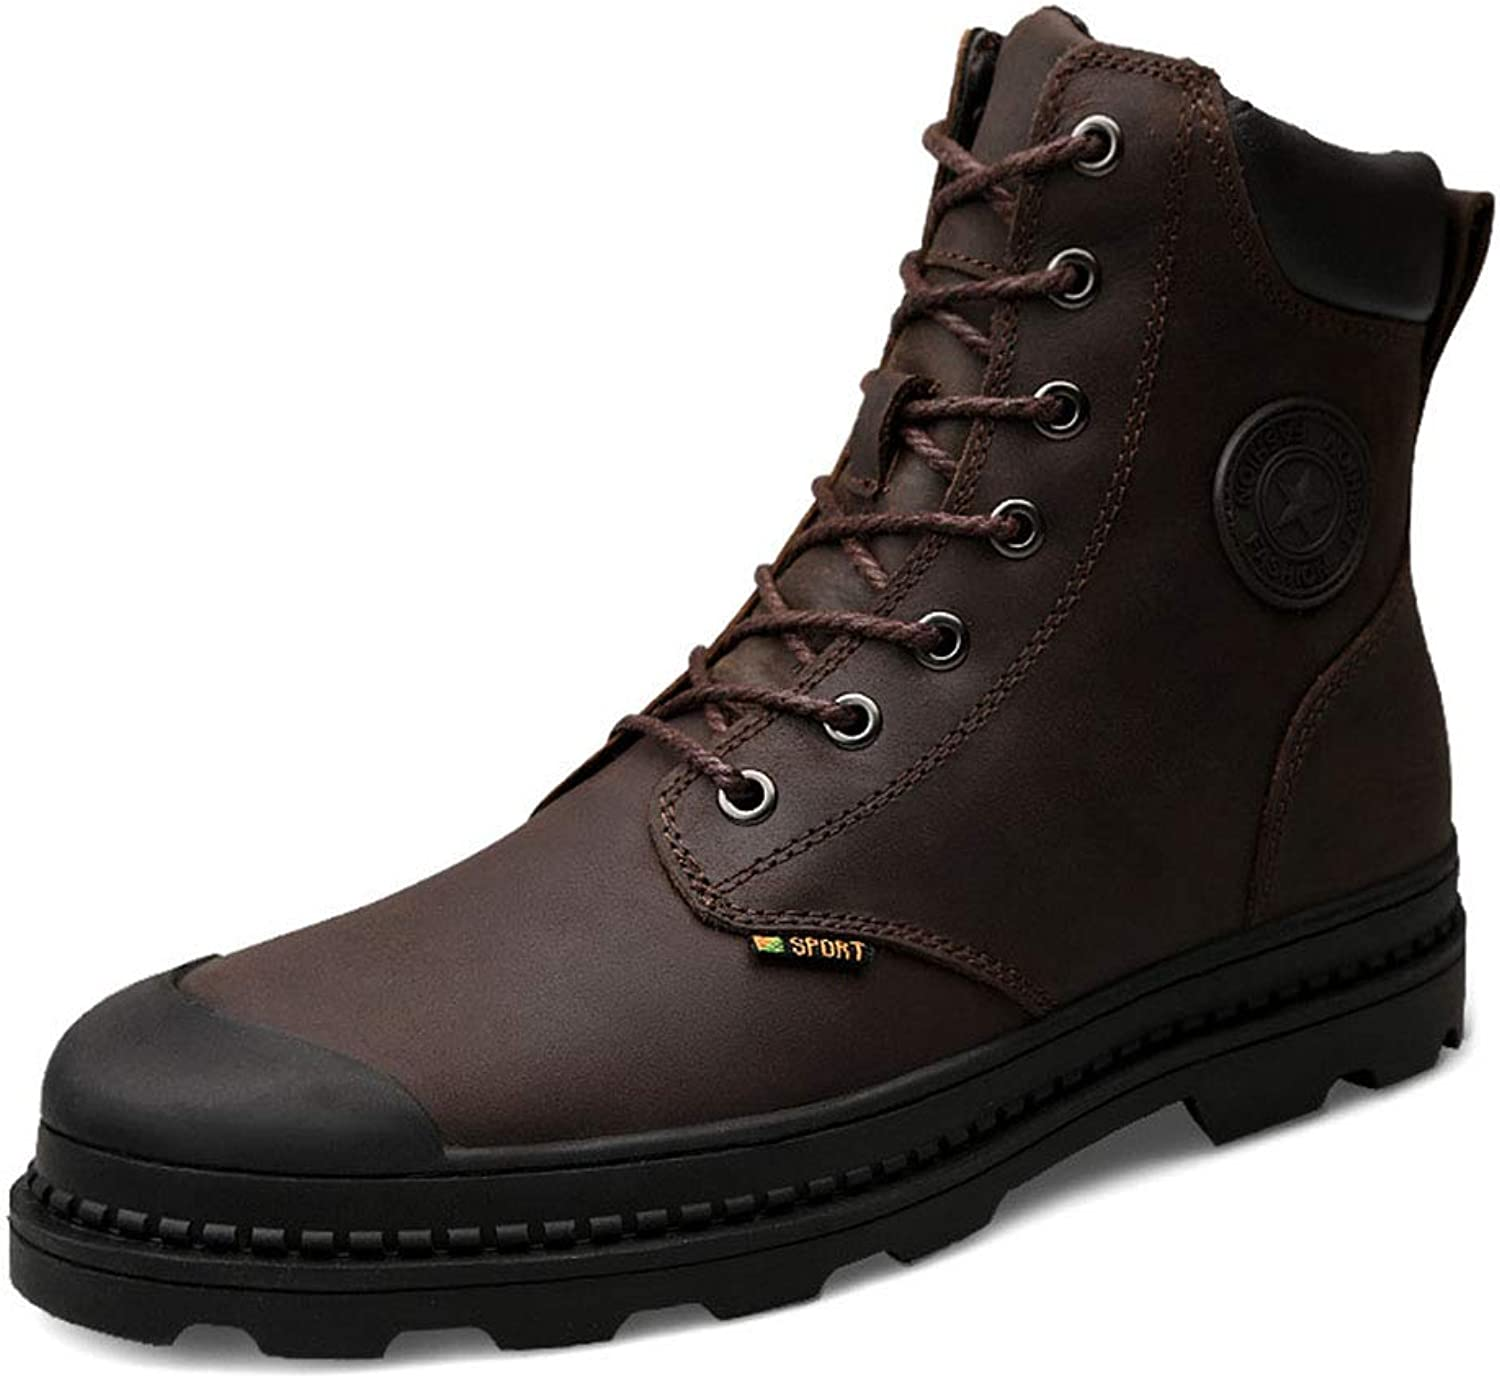 Men's Martin Boots Leather high-top Thick Heel Warm Cotton shoes lace up Fleece Lined Waterproof Snow Boots Winter Outdoor